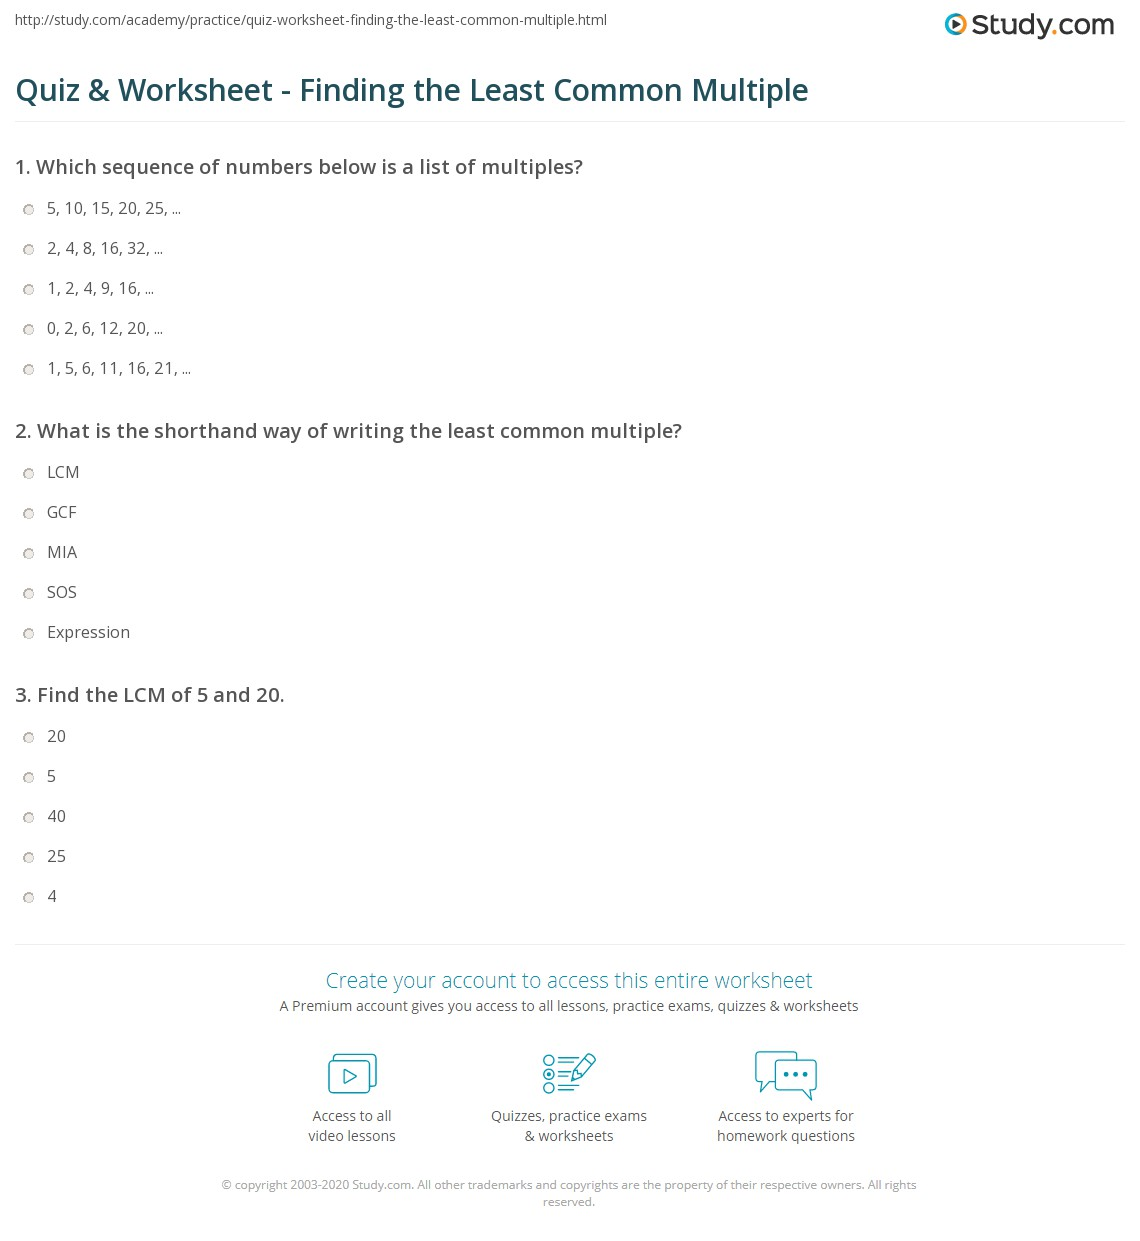 quiz  worksheet  finding the least common multiple  studycom print how to find the least common multiple worksheet